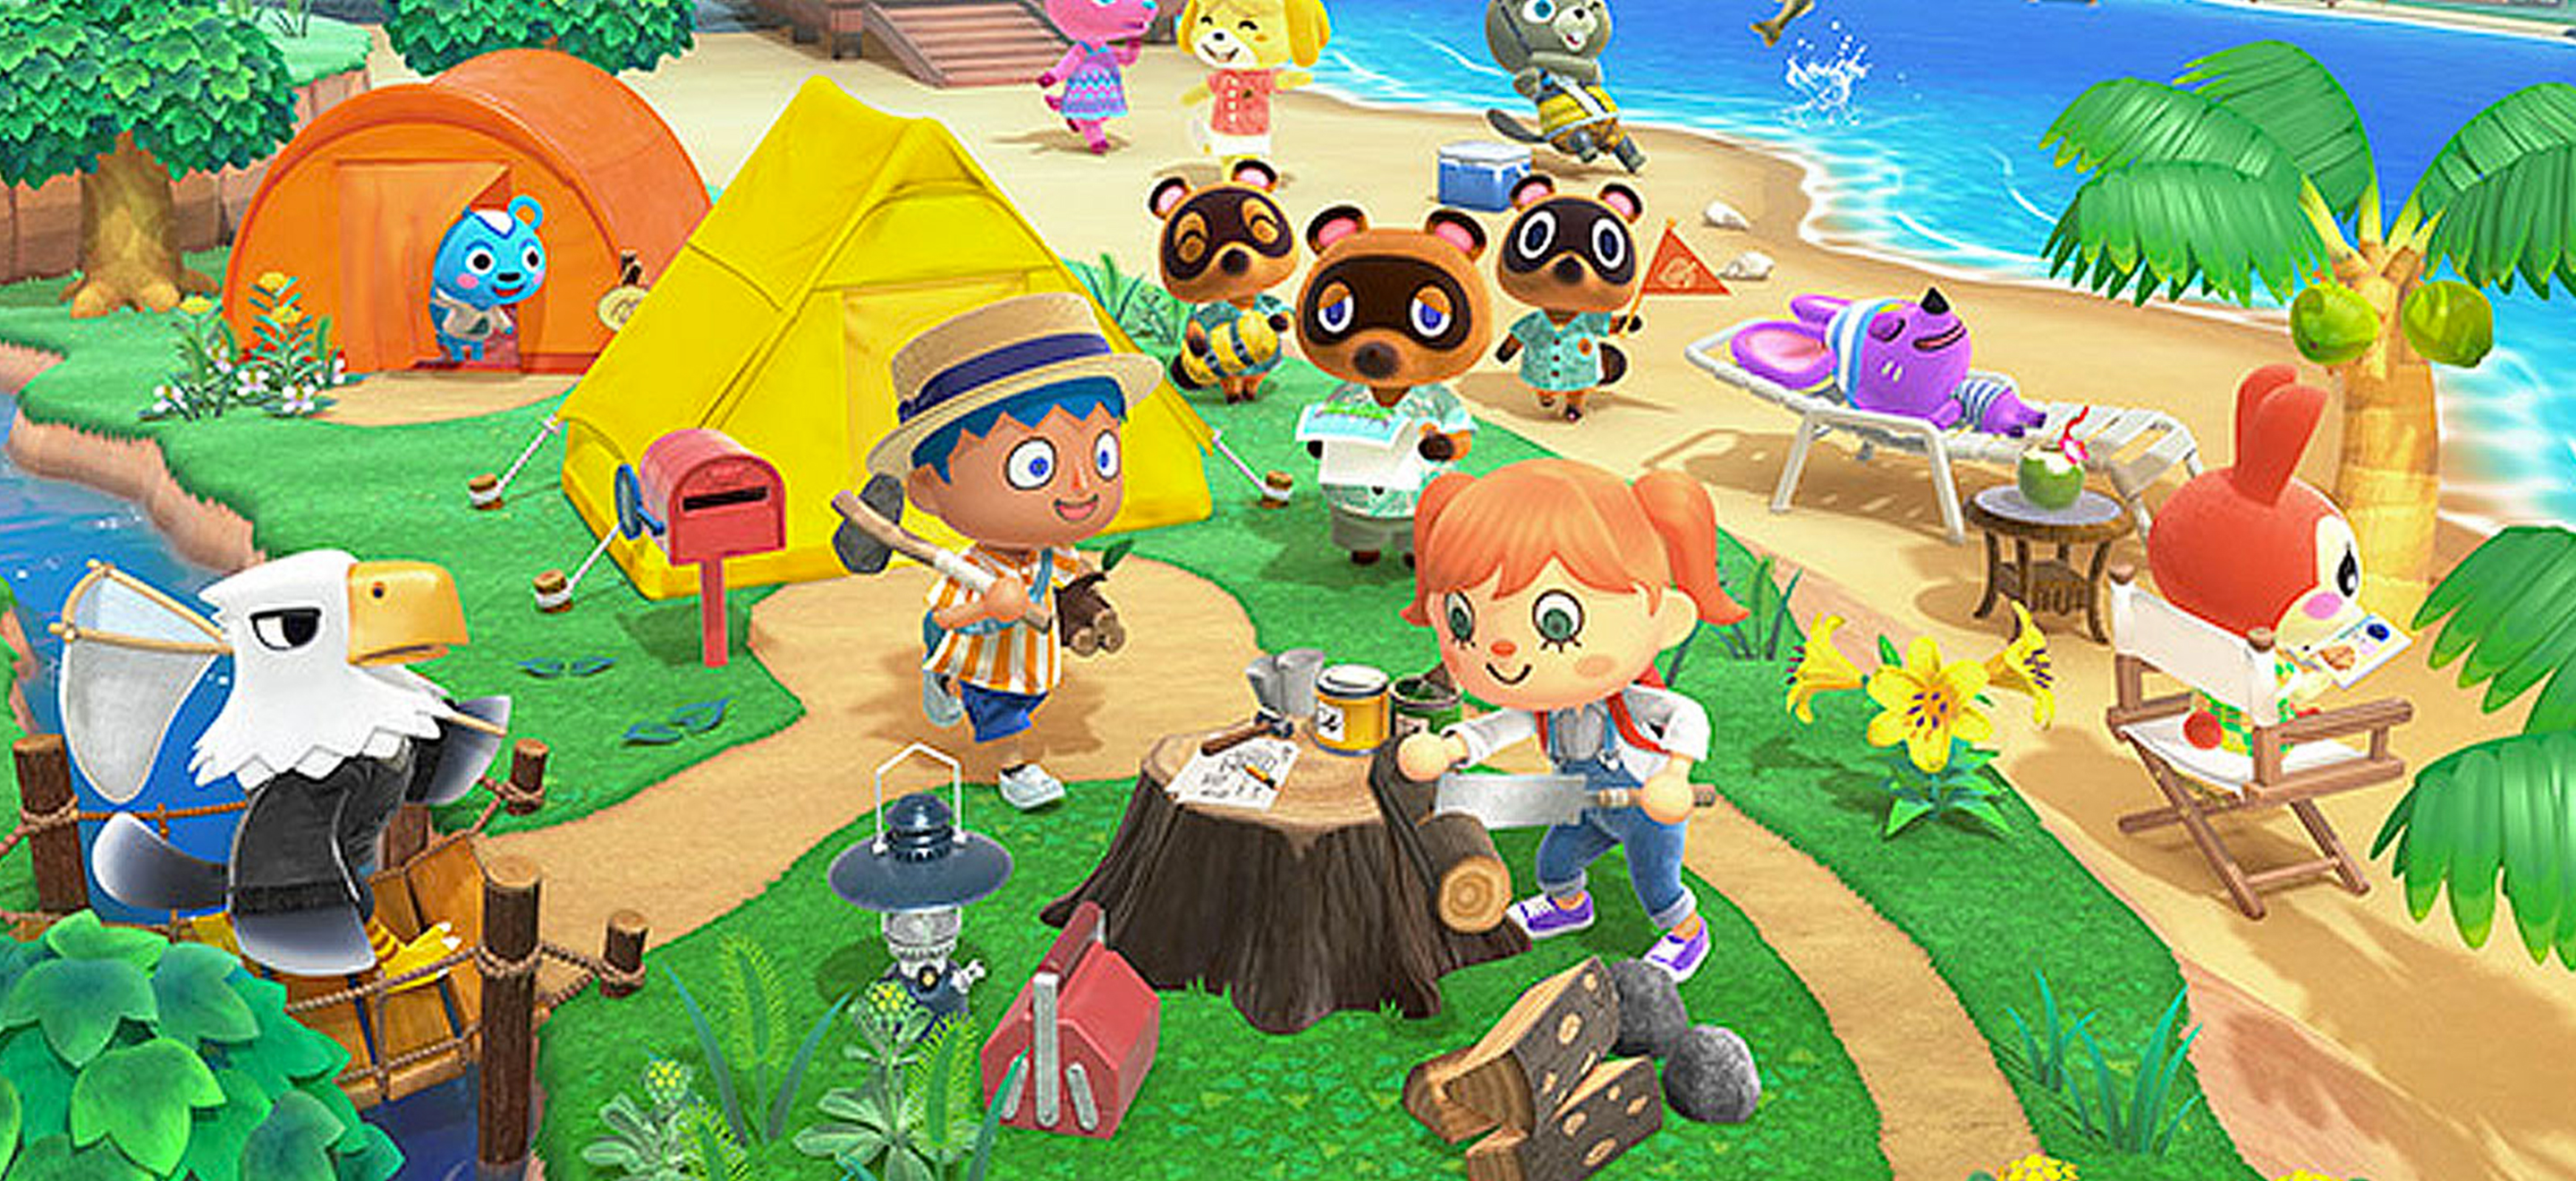 https://www.micromania.fr/on/demandware.static/-/Sites-Micromania-Library/default/dw5c20e4d2/fanzone/dossier/animalcrossing/animalcrossing-plage2.jpg